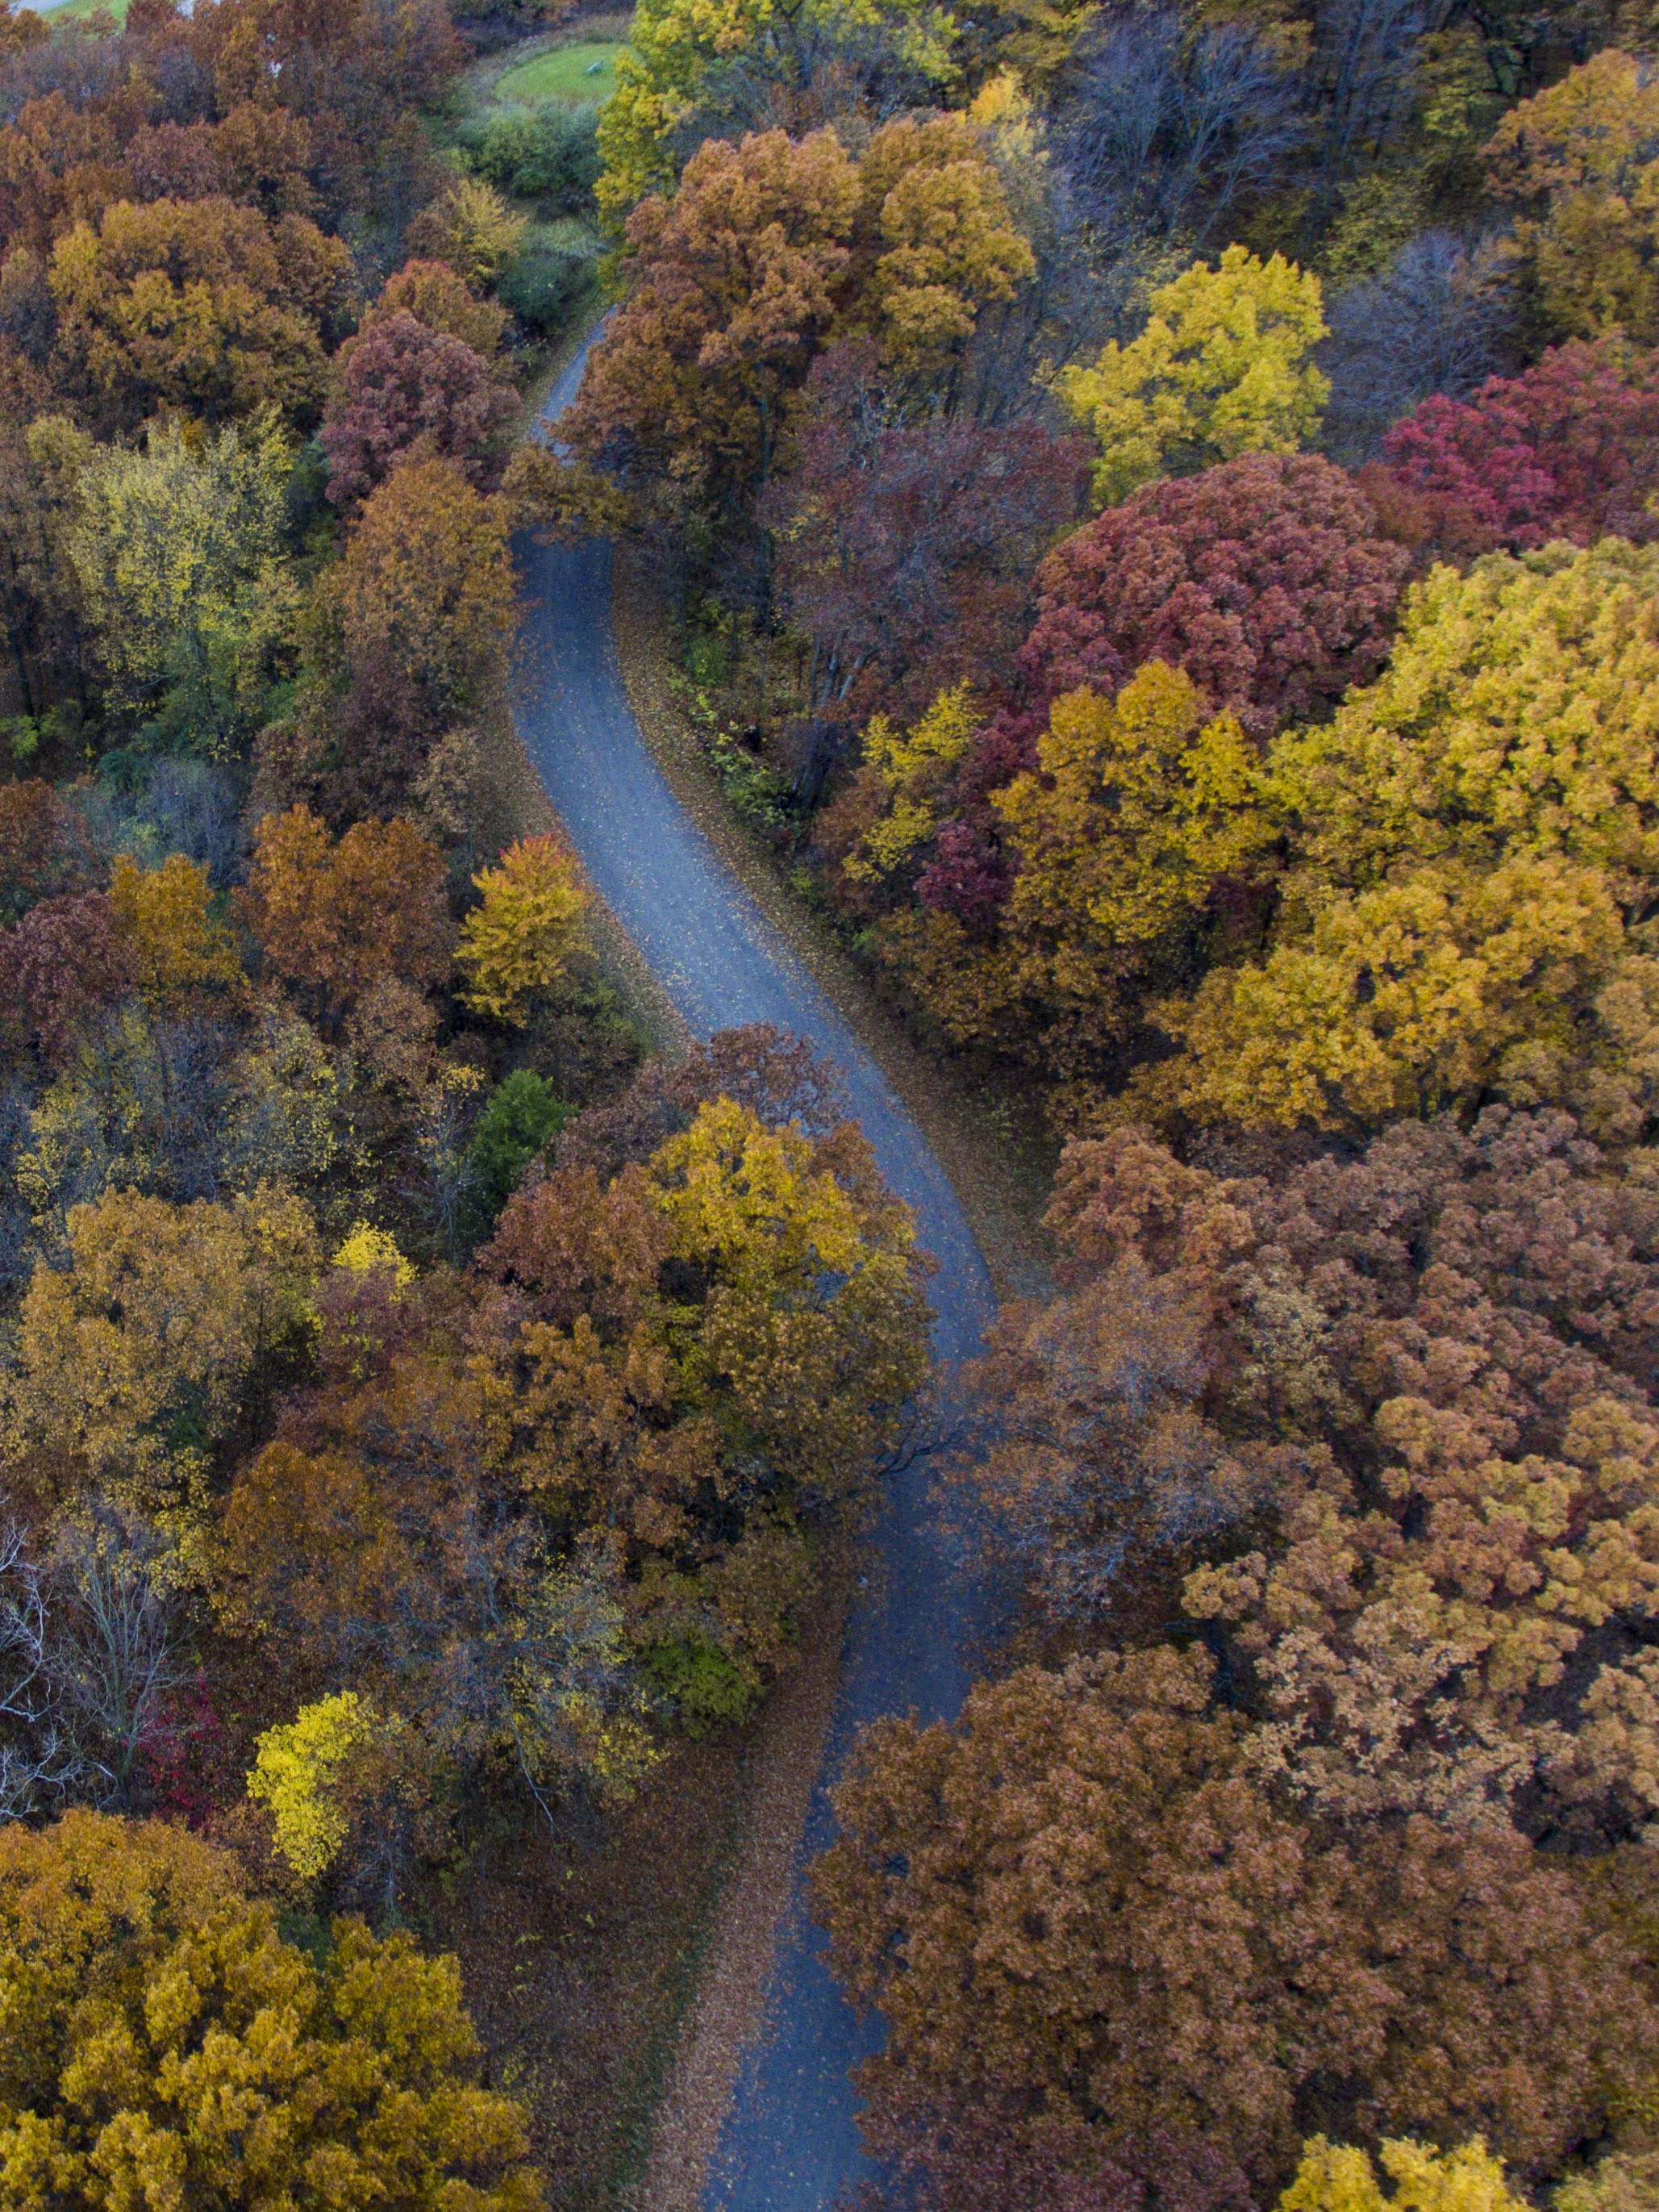 A drone shot of a curve in a road near autumn-colored trees